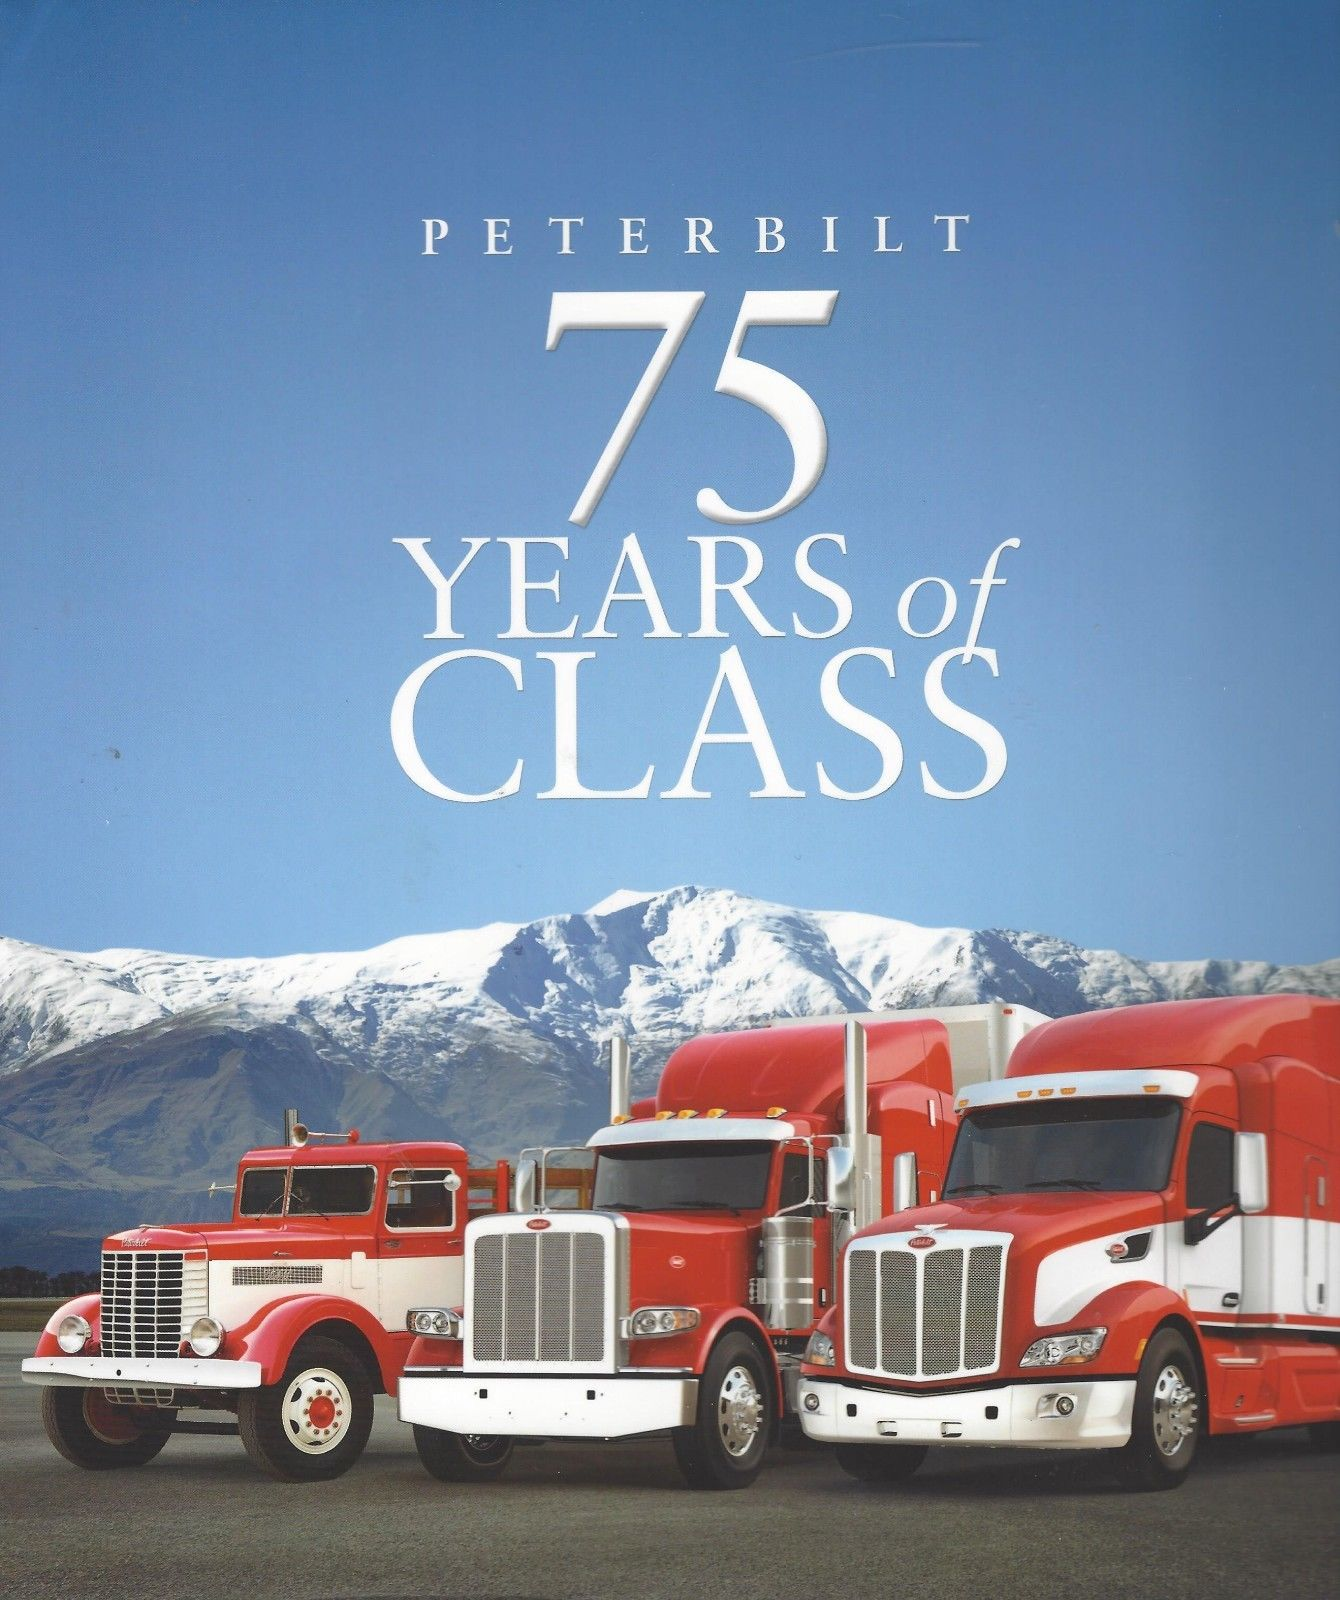 Peterbilt - 75 Years of Class